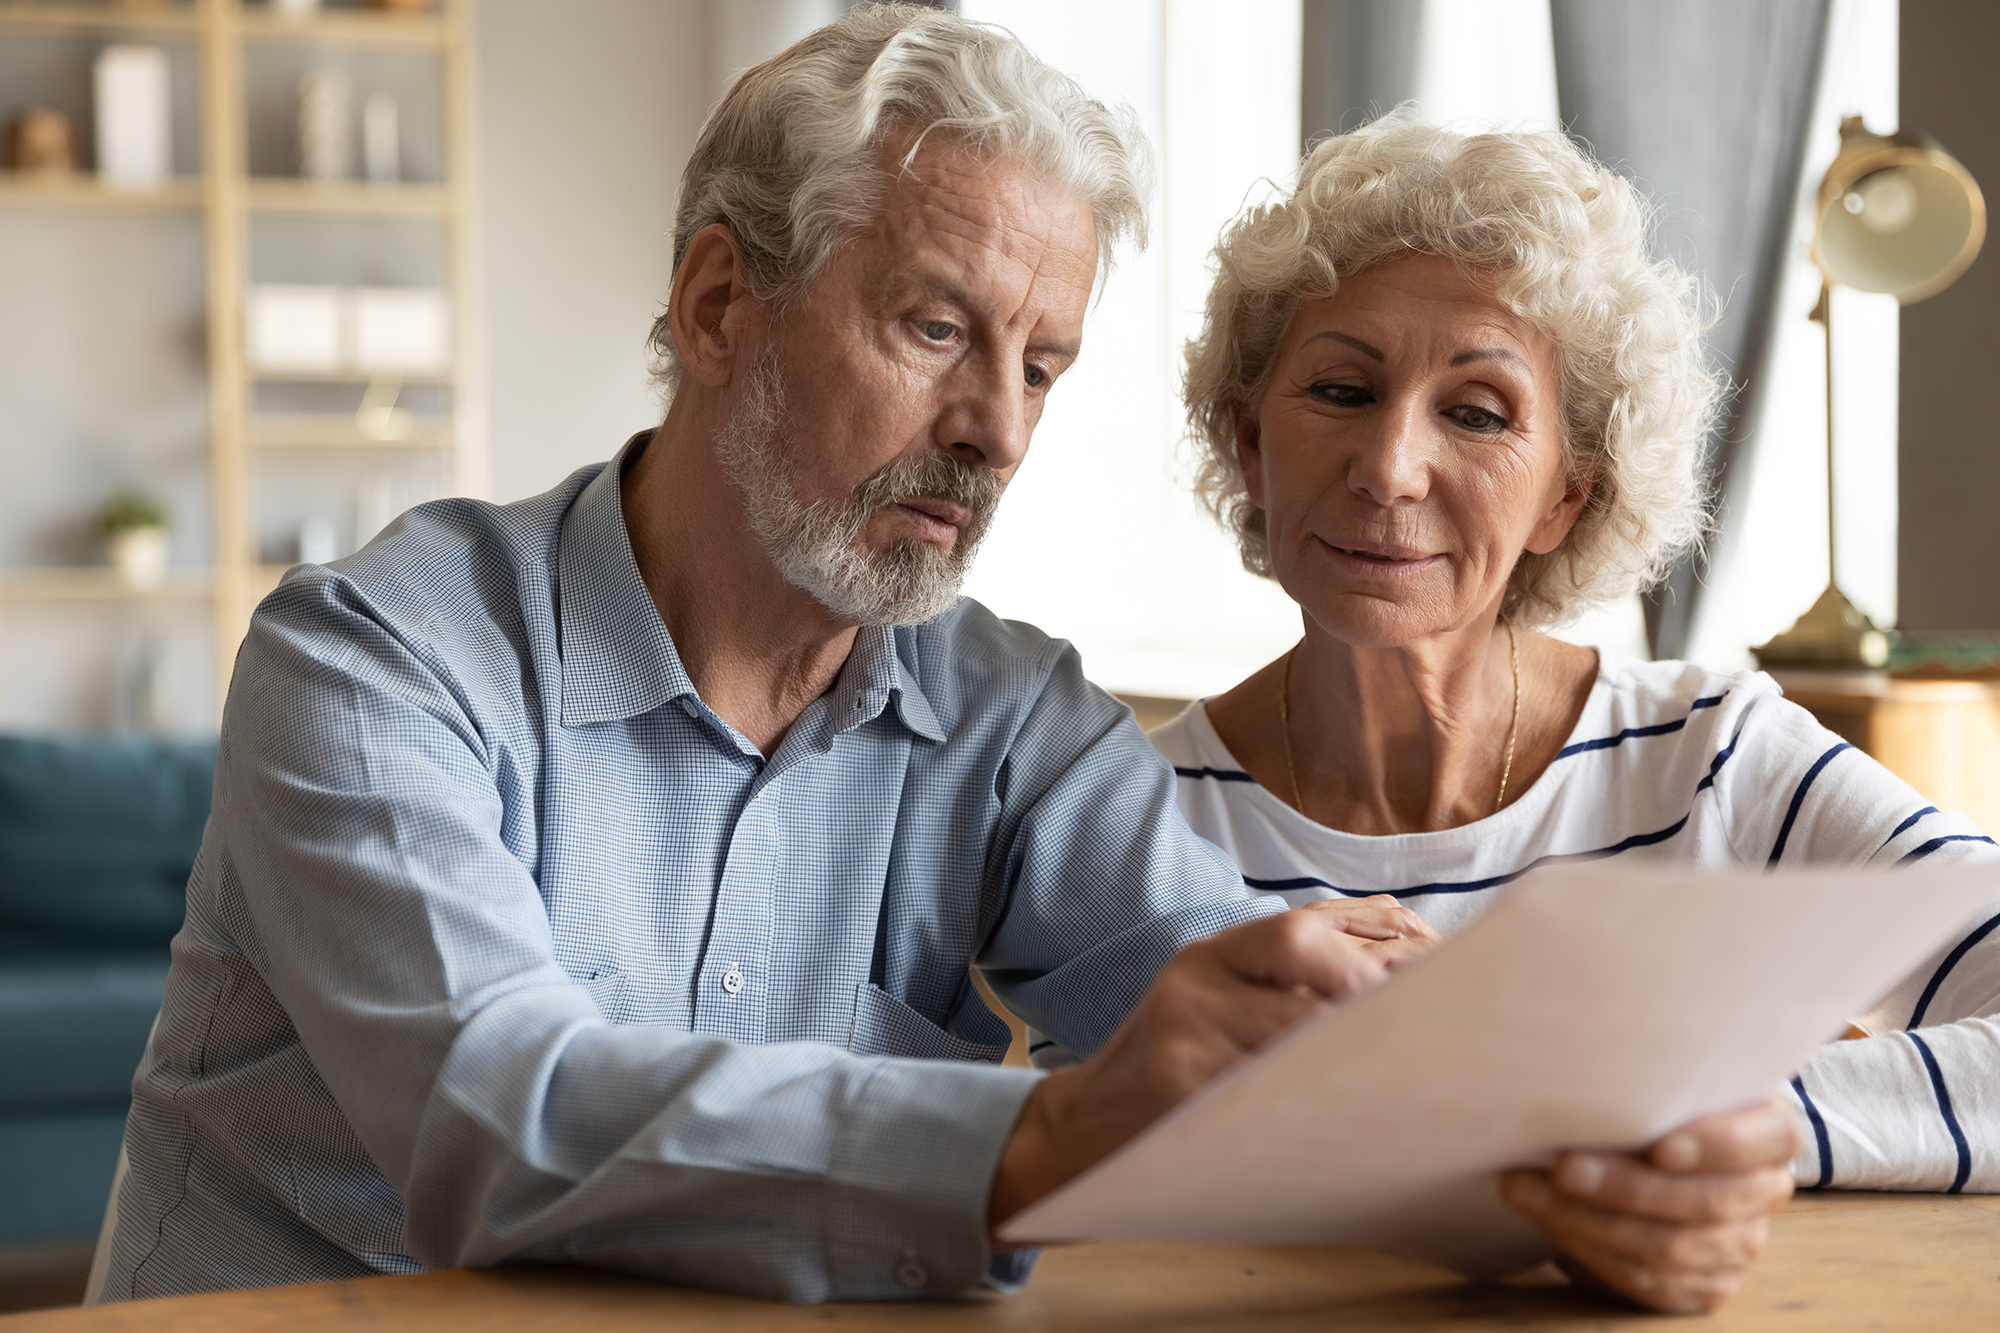 Older couple checking pension statement. (Image: Shutterstock)